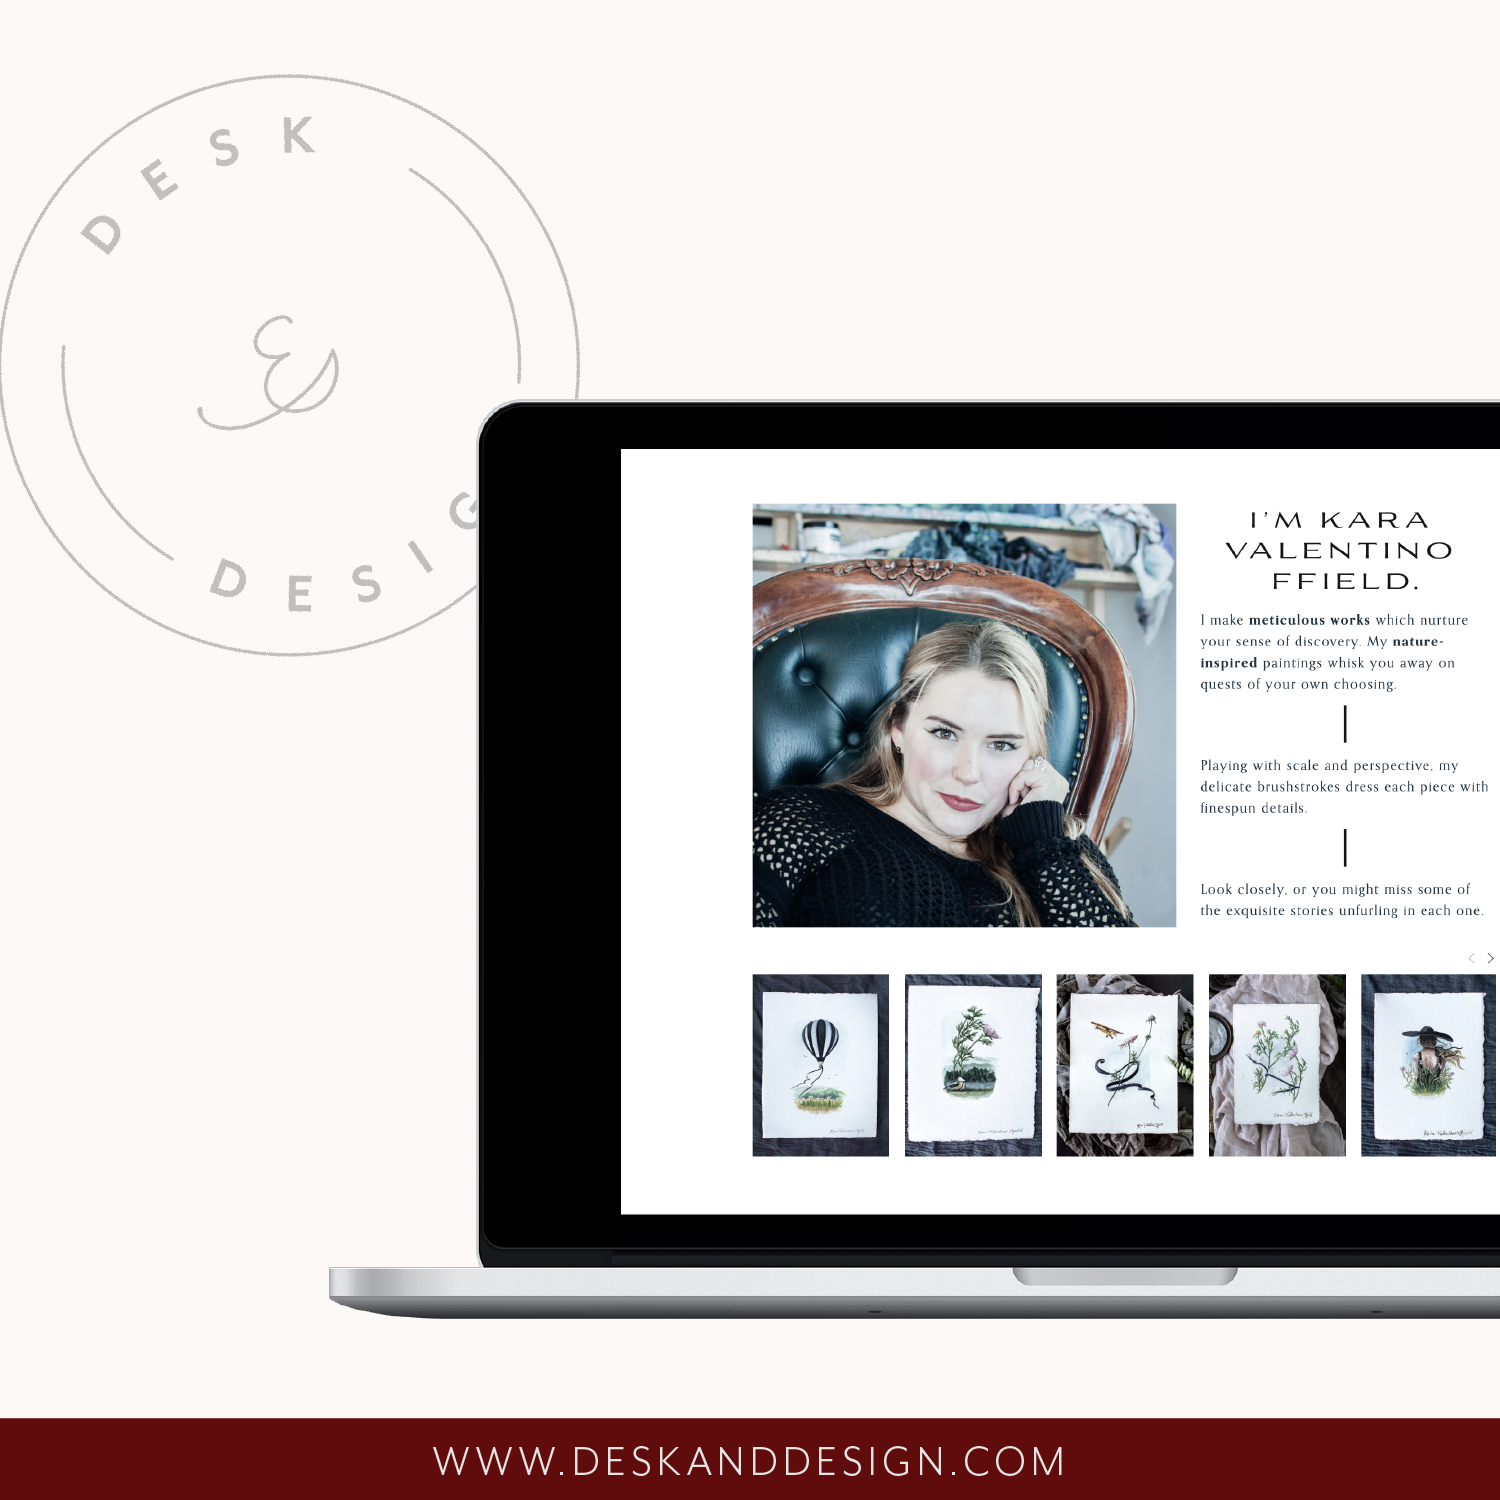 Desk and Design. Brand, web design, and copywriting for creatives.png